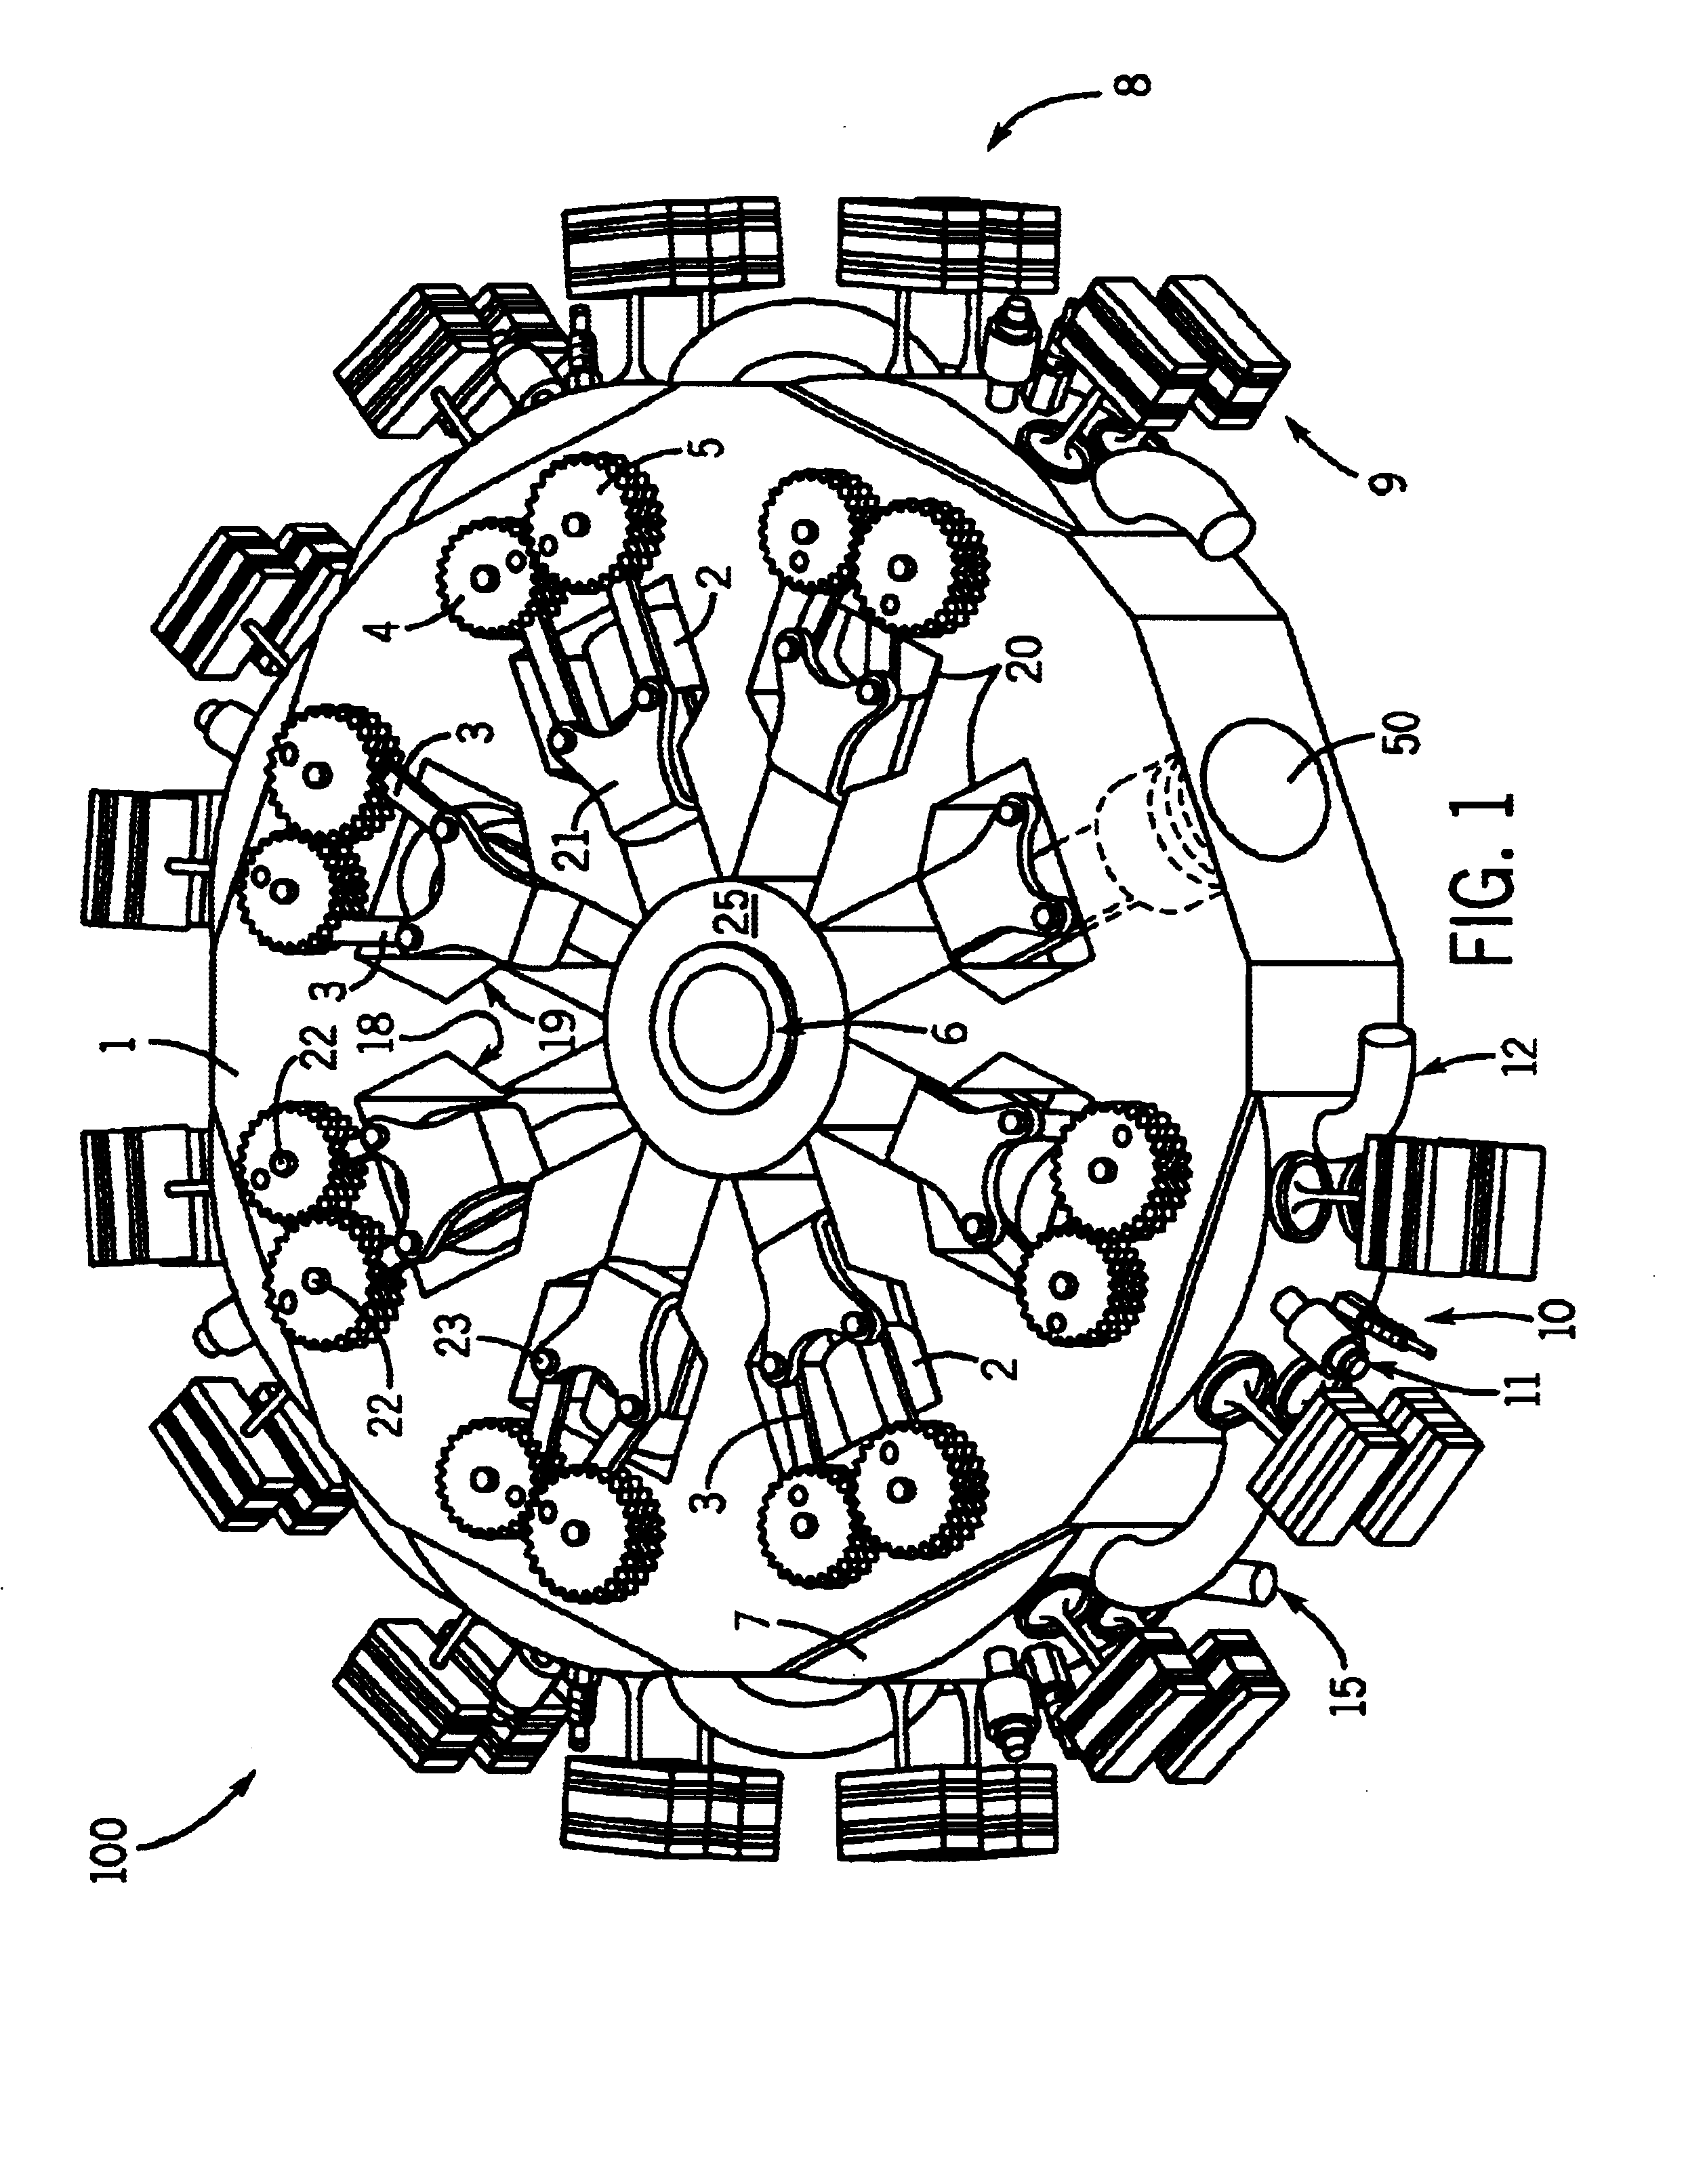 Cylinder Radial Engine Drawing Wiring And Engine Diagram